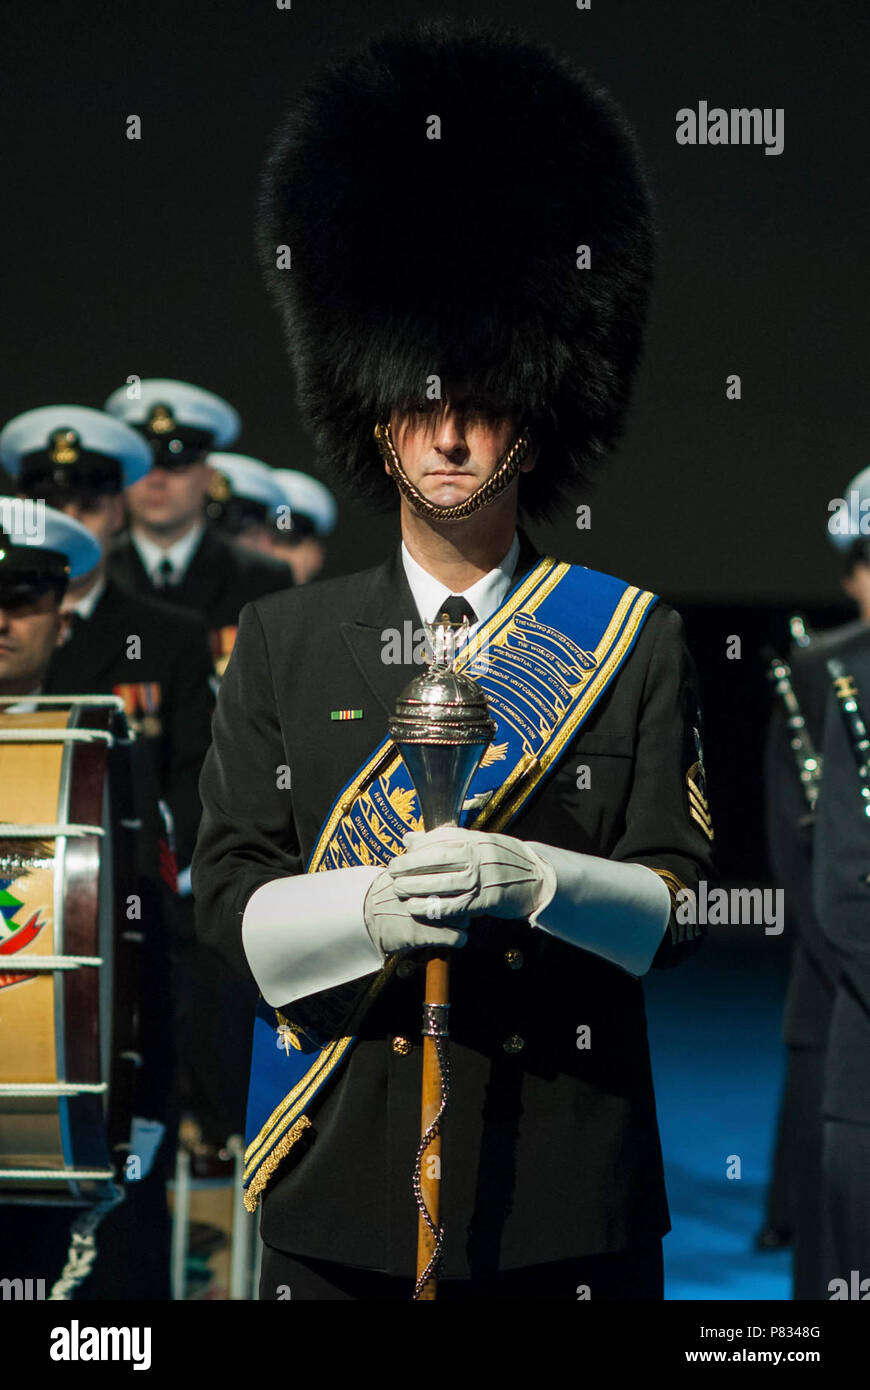 ARLINGTON, Va. (Feb. 6, 2017) Senior Chief Musician Mike Bayes, drum major of the United States Navy Ceremonial Band, prepares to lead the band at the arrival of the French Chief of Defense Staff, General Pierre de Villiers.  The Ceremonial Band has two roles in a high-level ceremony of this nature: display the pride and heritage of today's Navy and pay respect to France for its continued partnership. Stock Photo